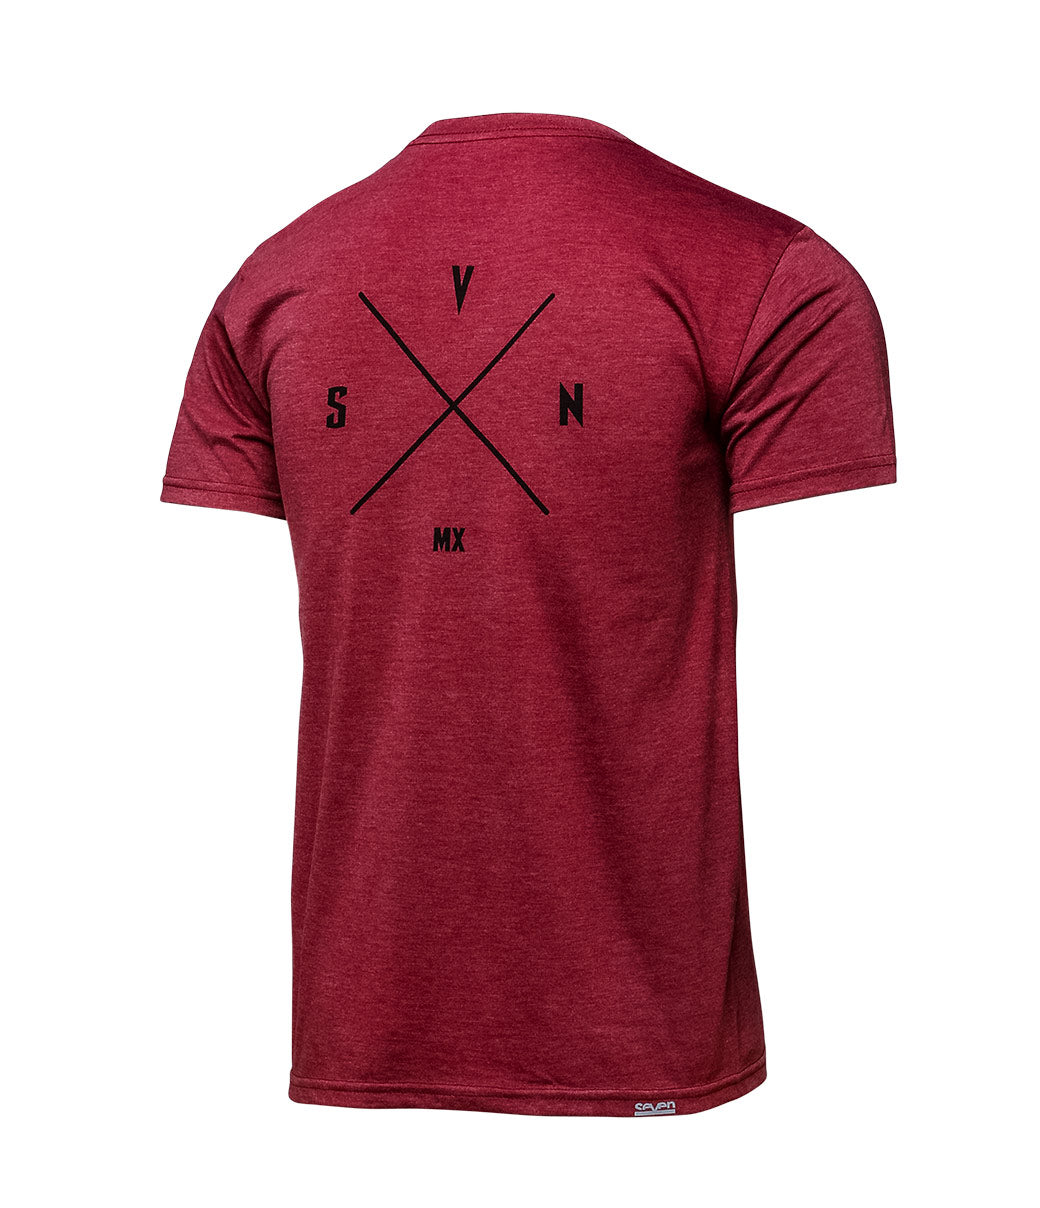 Benchmark Tee - Burgundy Heather